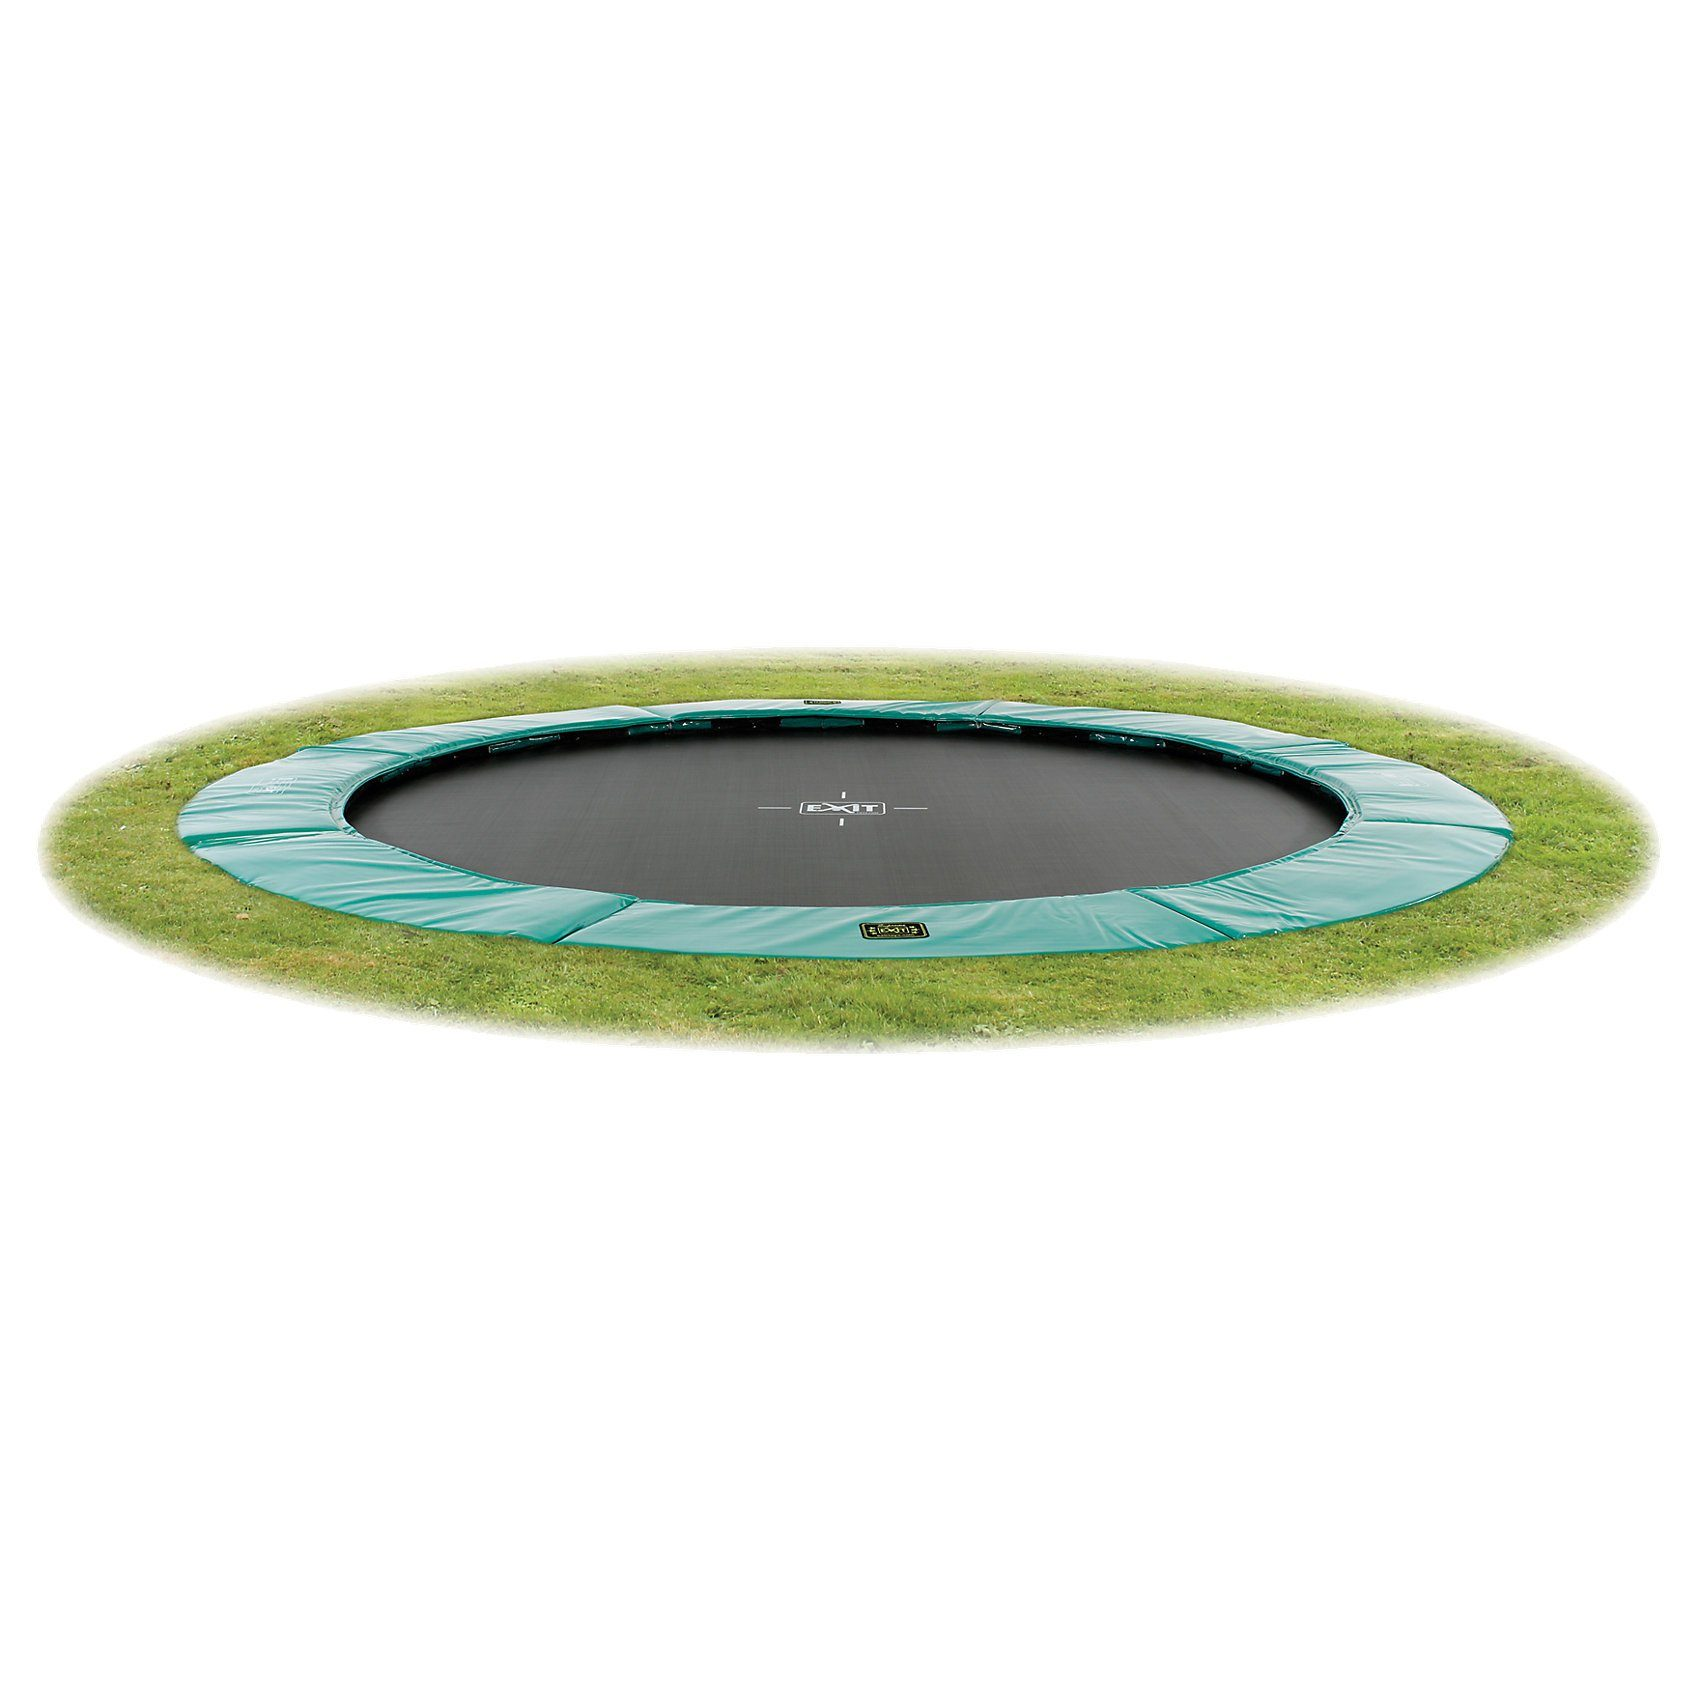 EXIT Supreme Ground Level Trampolin, 366 cm